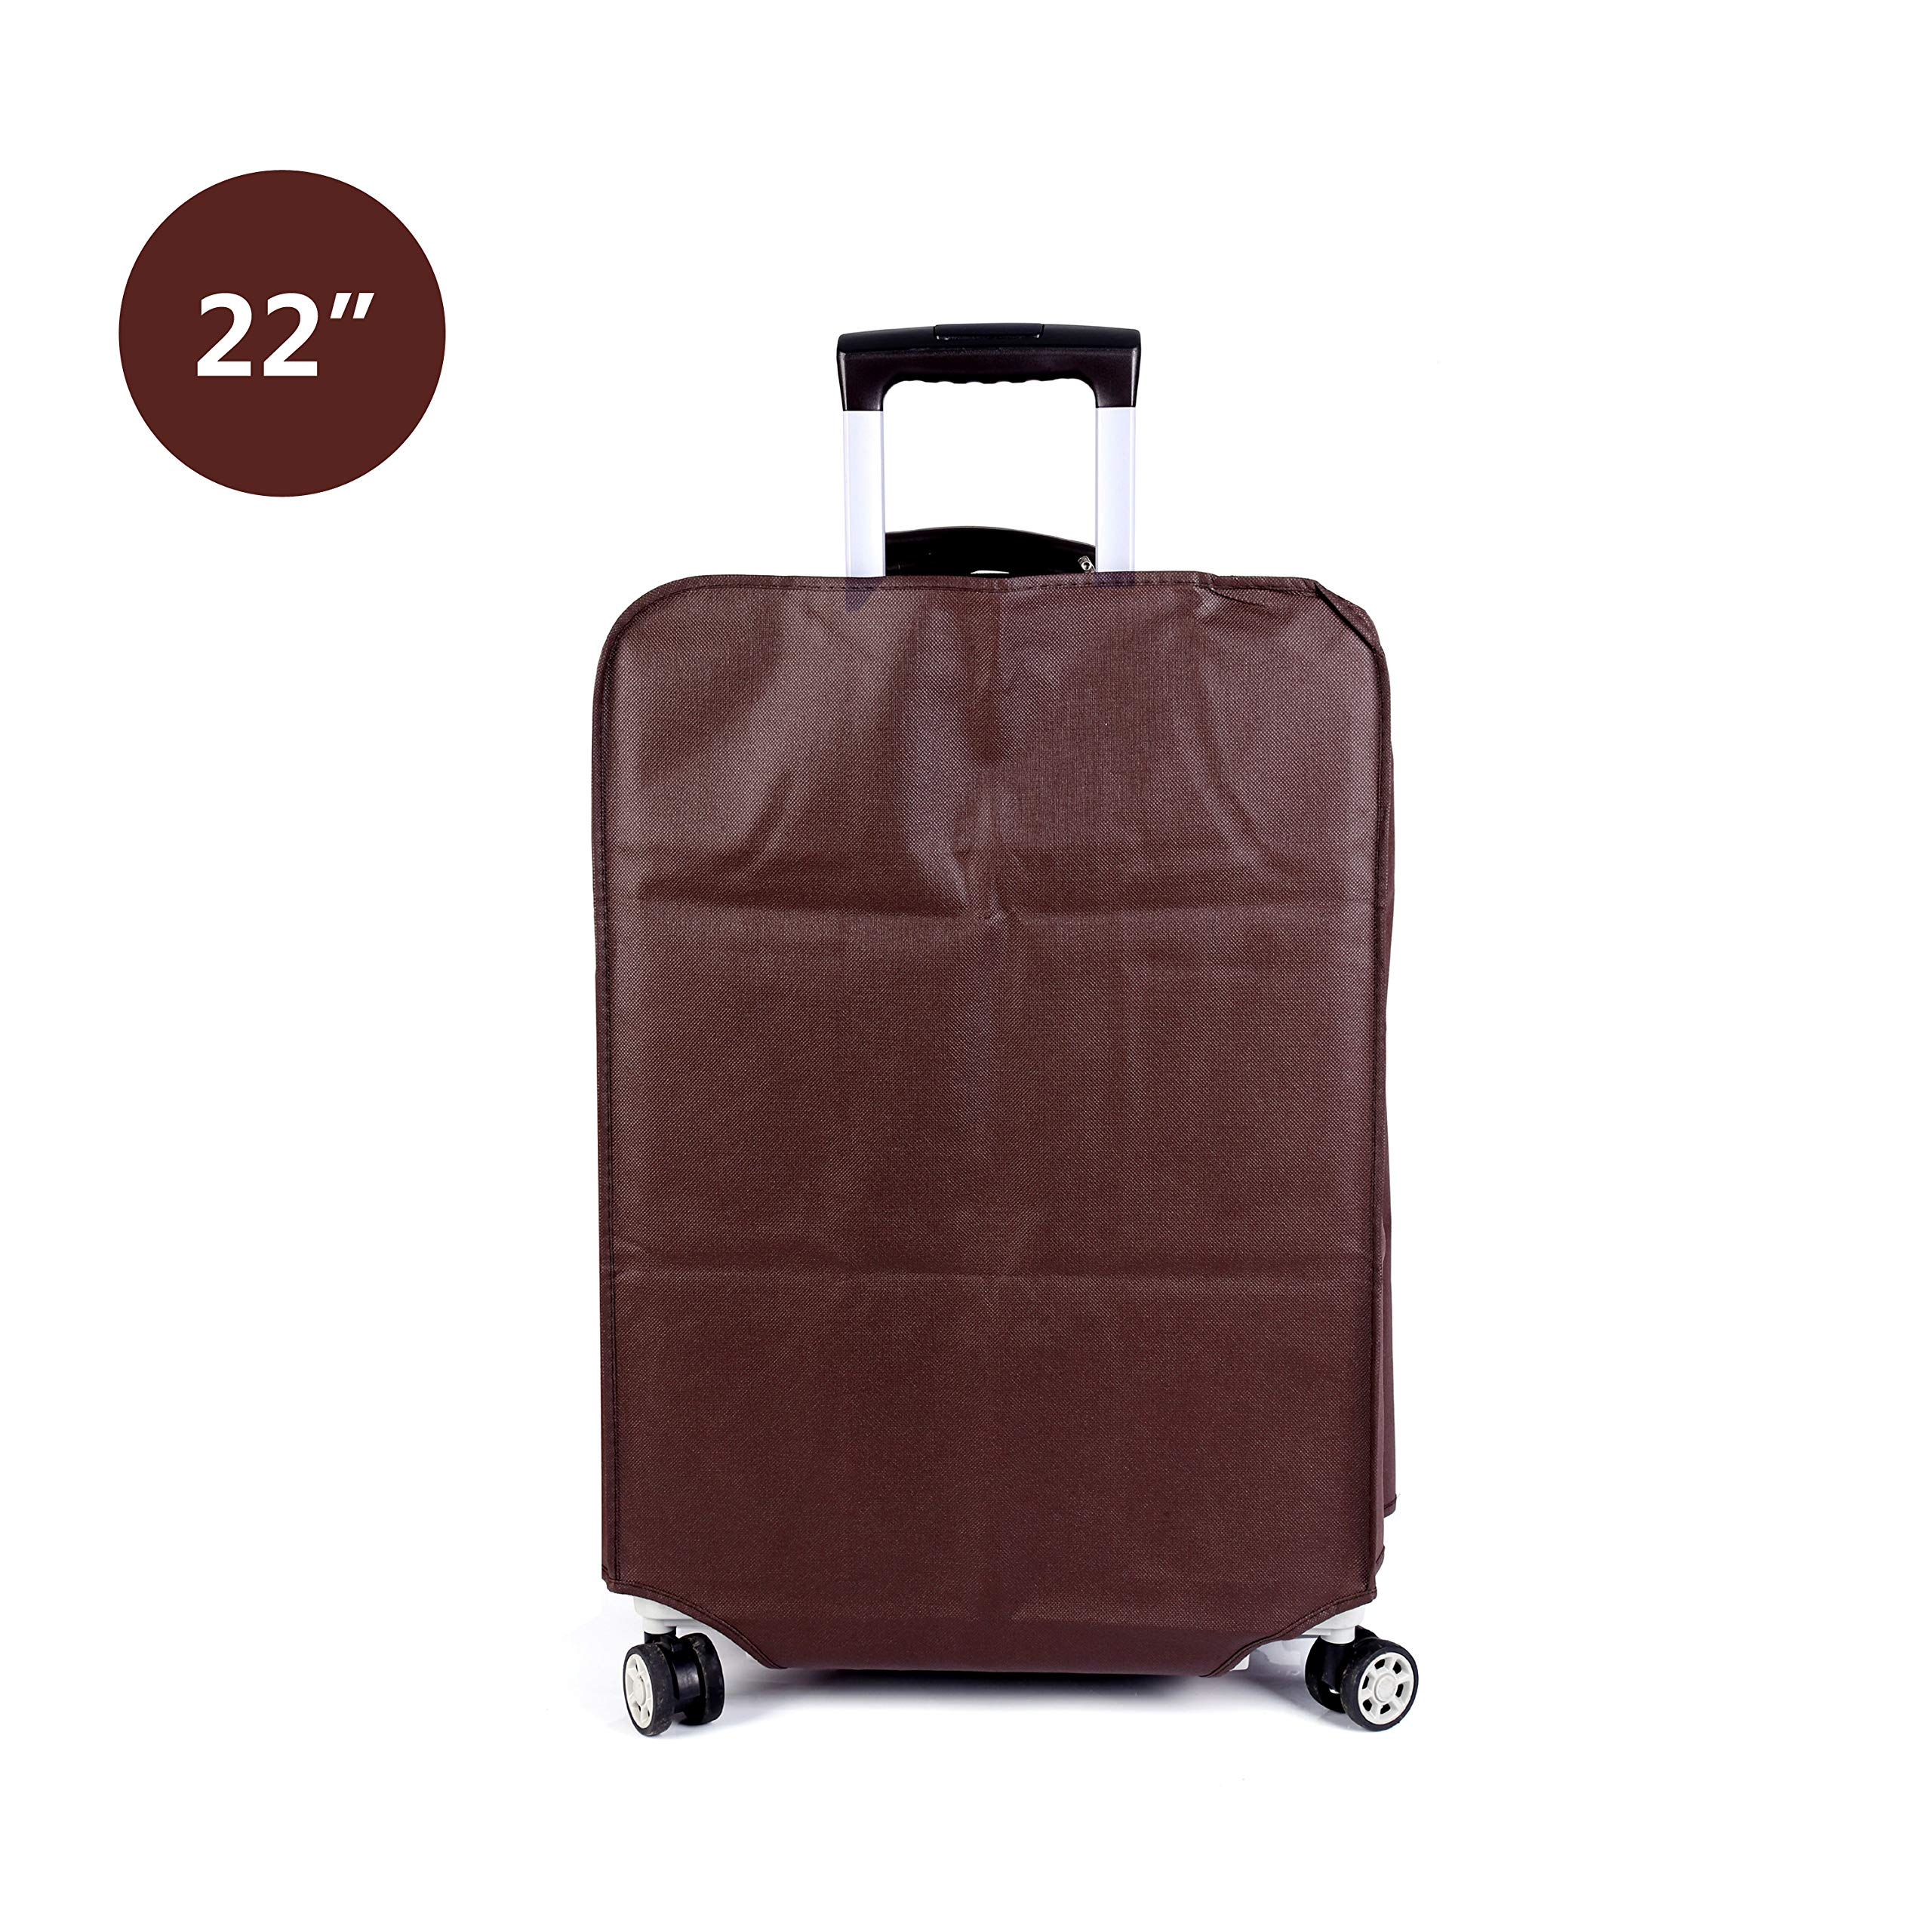 Dust Cover Non-woven Suitcase Cover,3 Colors,Fits 22 Inch,Brown by CXGIAE (Image #3)